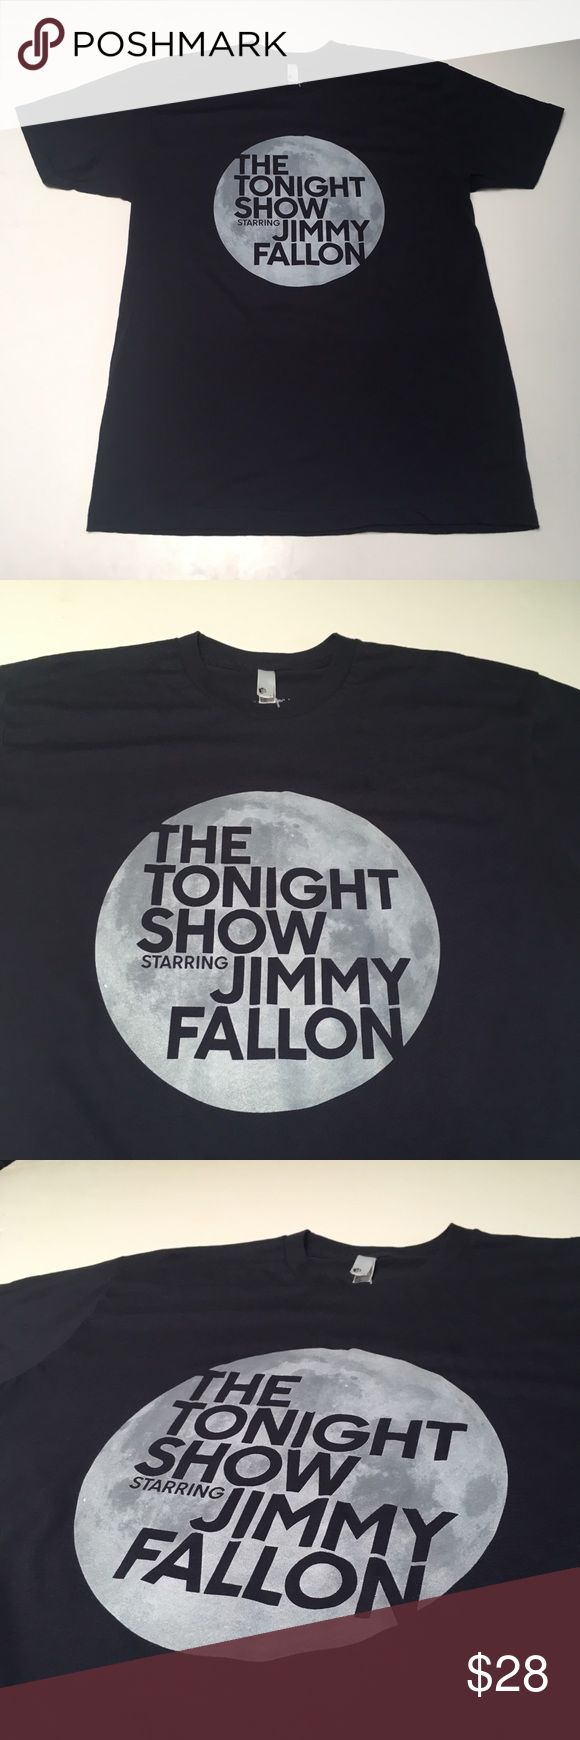 The Tonight Show Jimmy Fallon official The Roots Nights are better with Jimmy Official NBC merchandise Brand new condition - minor blemish noted in pics  Please check measurements in pics for fit reference.     Smoke and pet free storage  Happy to answer any questions    Thanks for looking American Apparel Shirts Tees - Short Sleeve